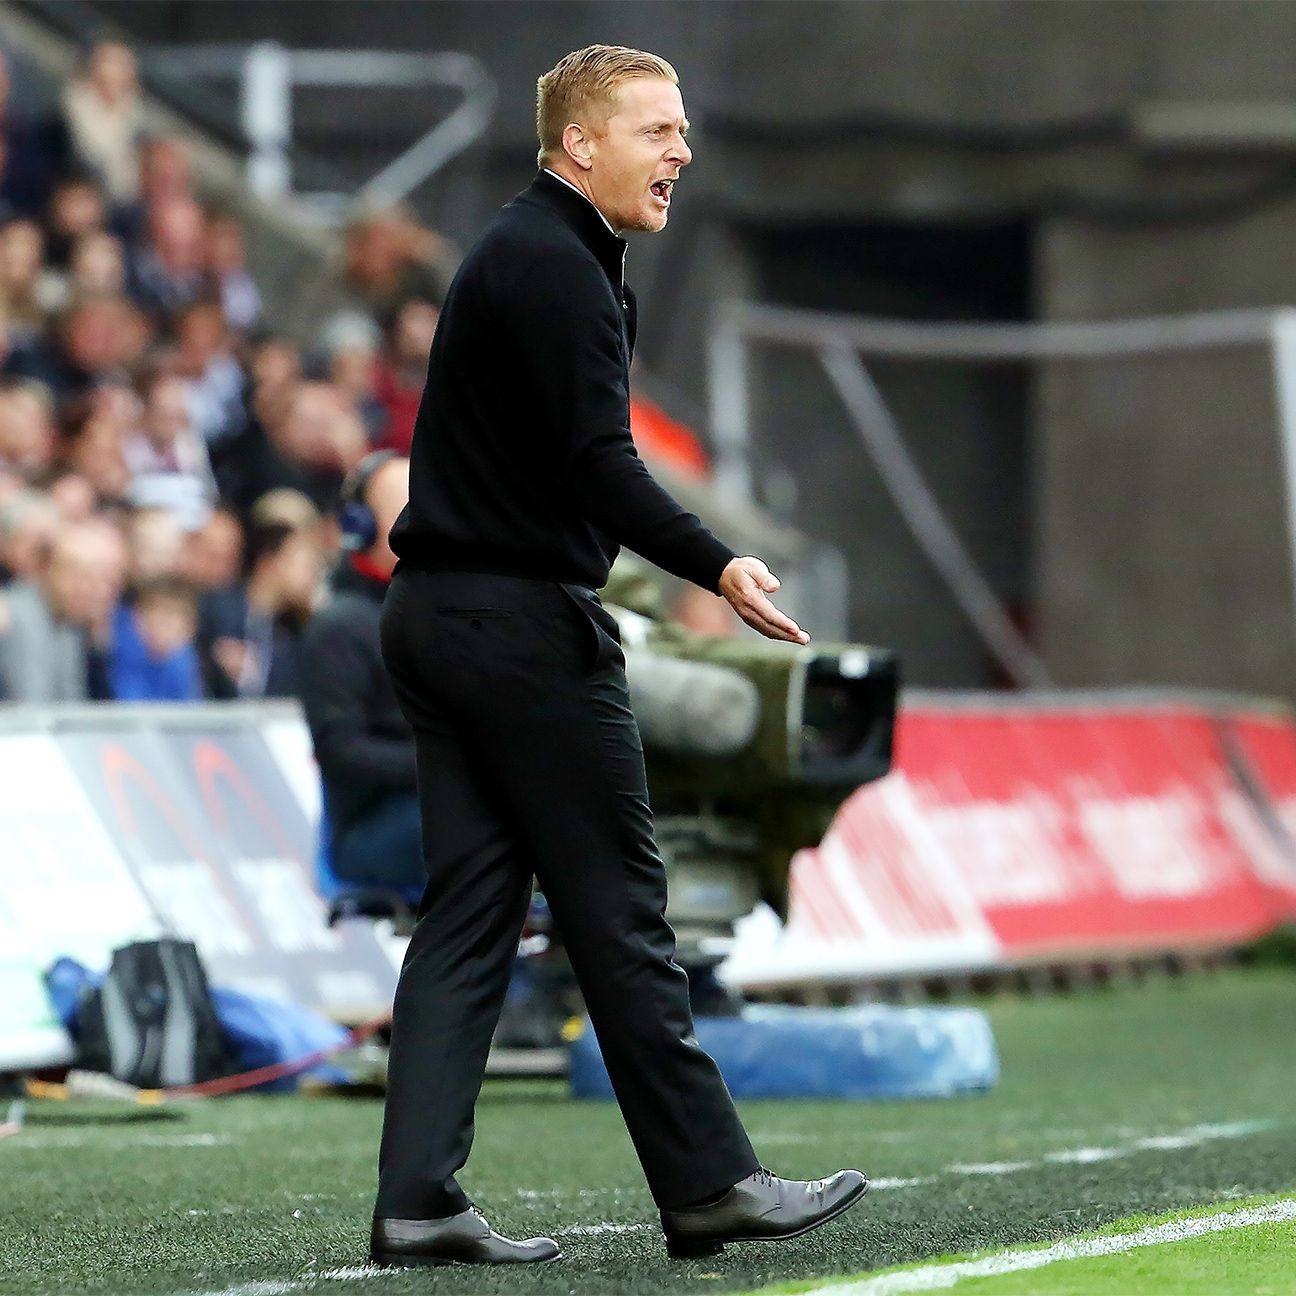 After a bright start to the 2015-16 season, things have gone south for Swansea manager Garry Monk.